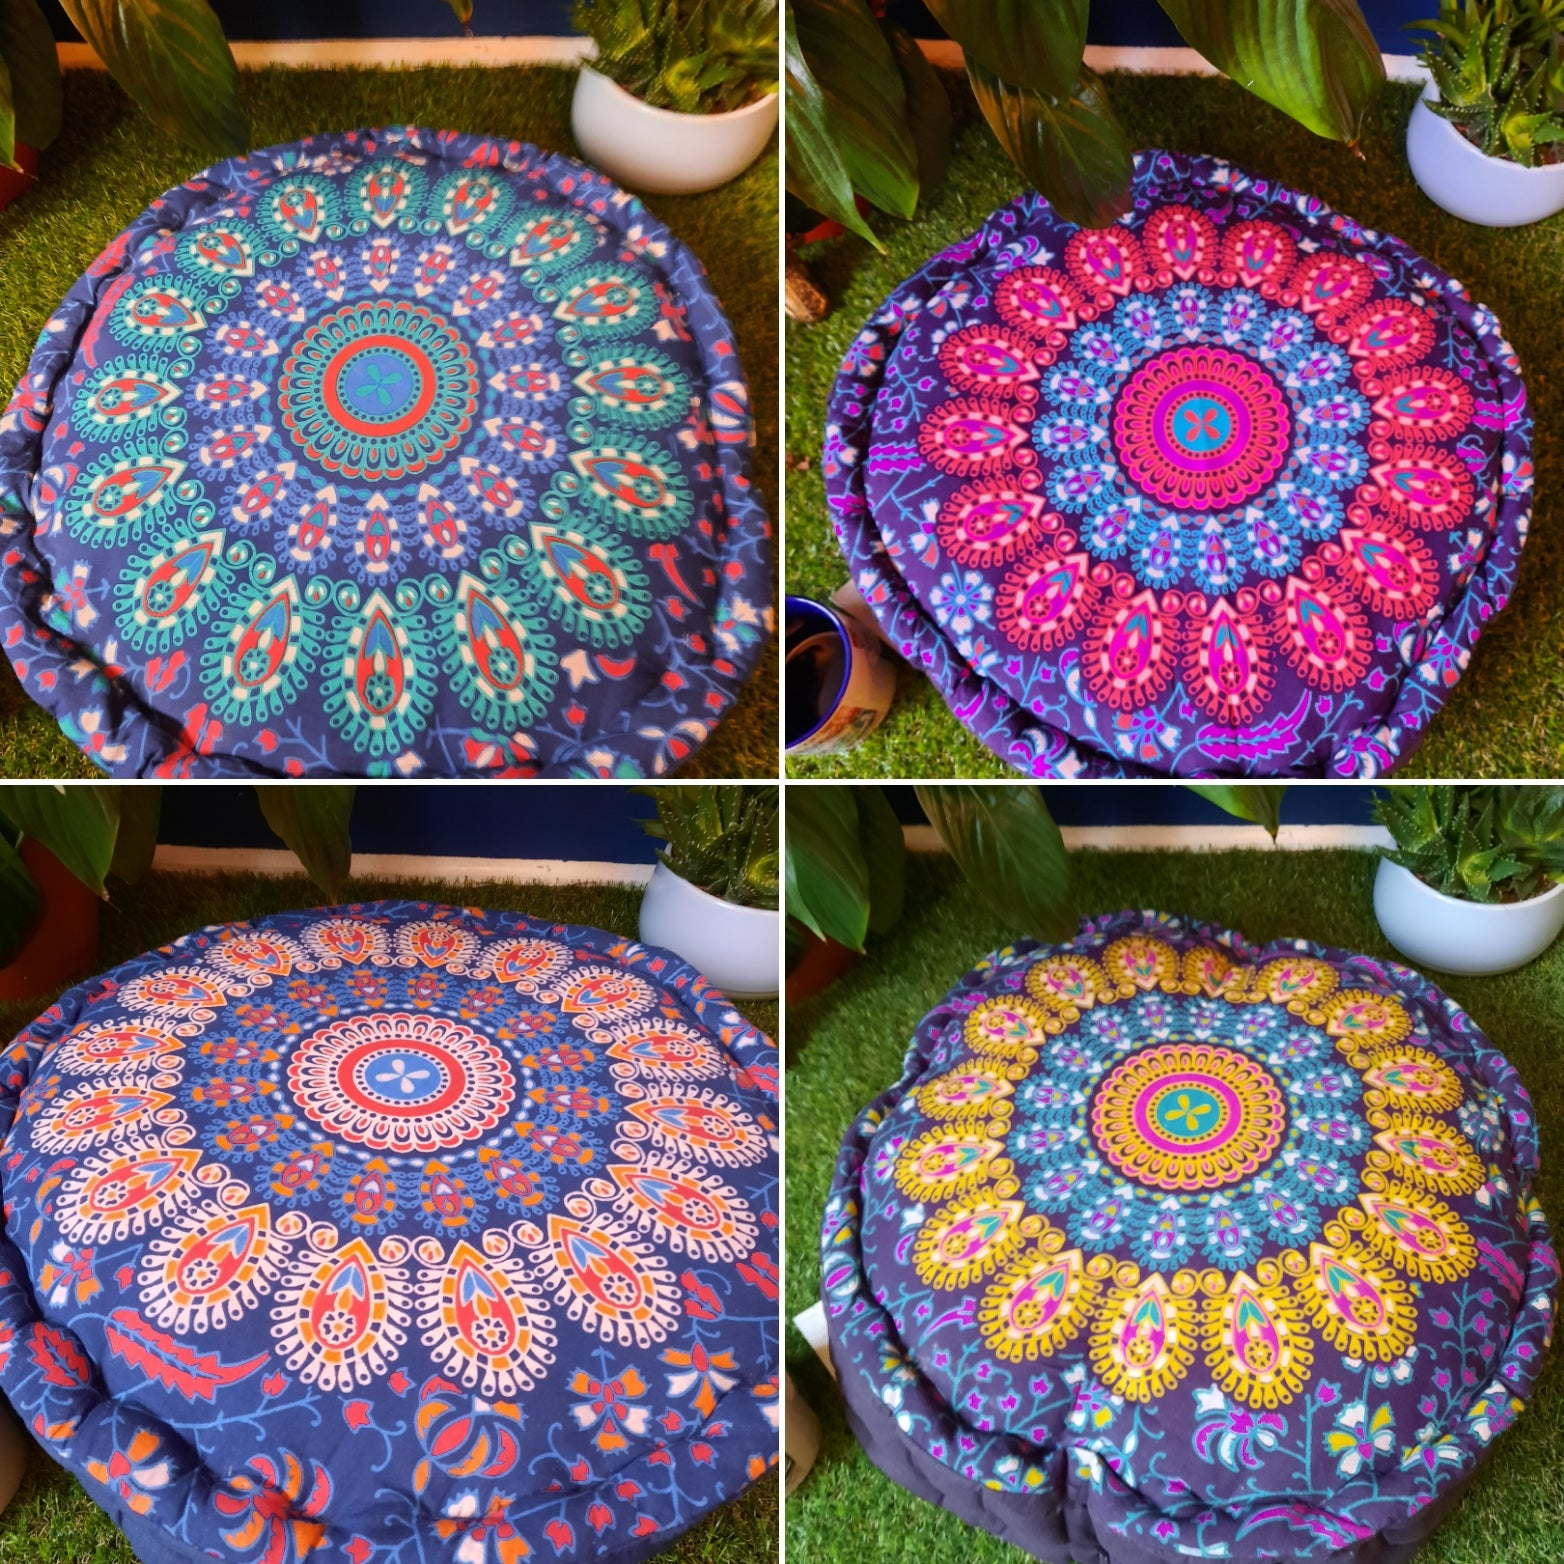 Meditation cushion from india. (Fairtrade item)